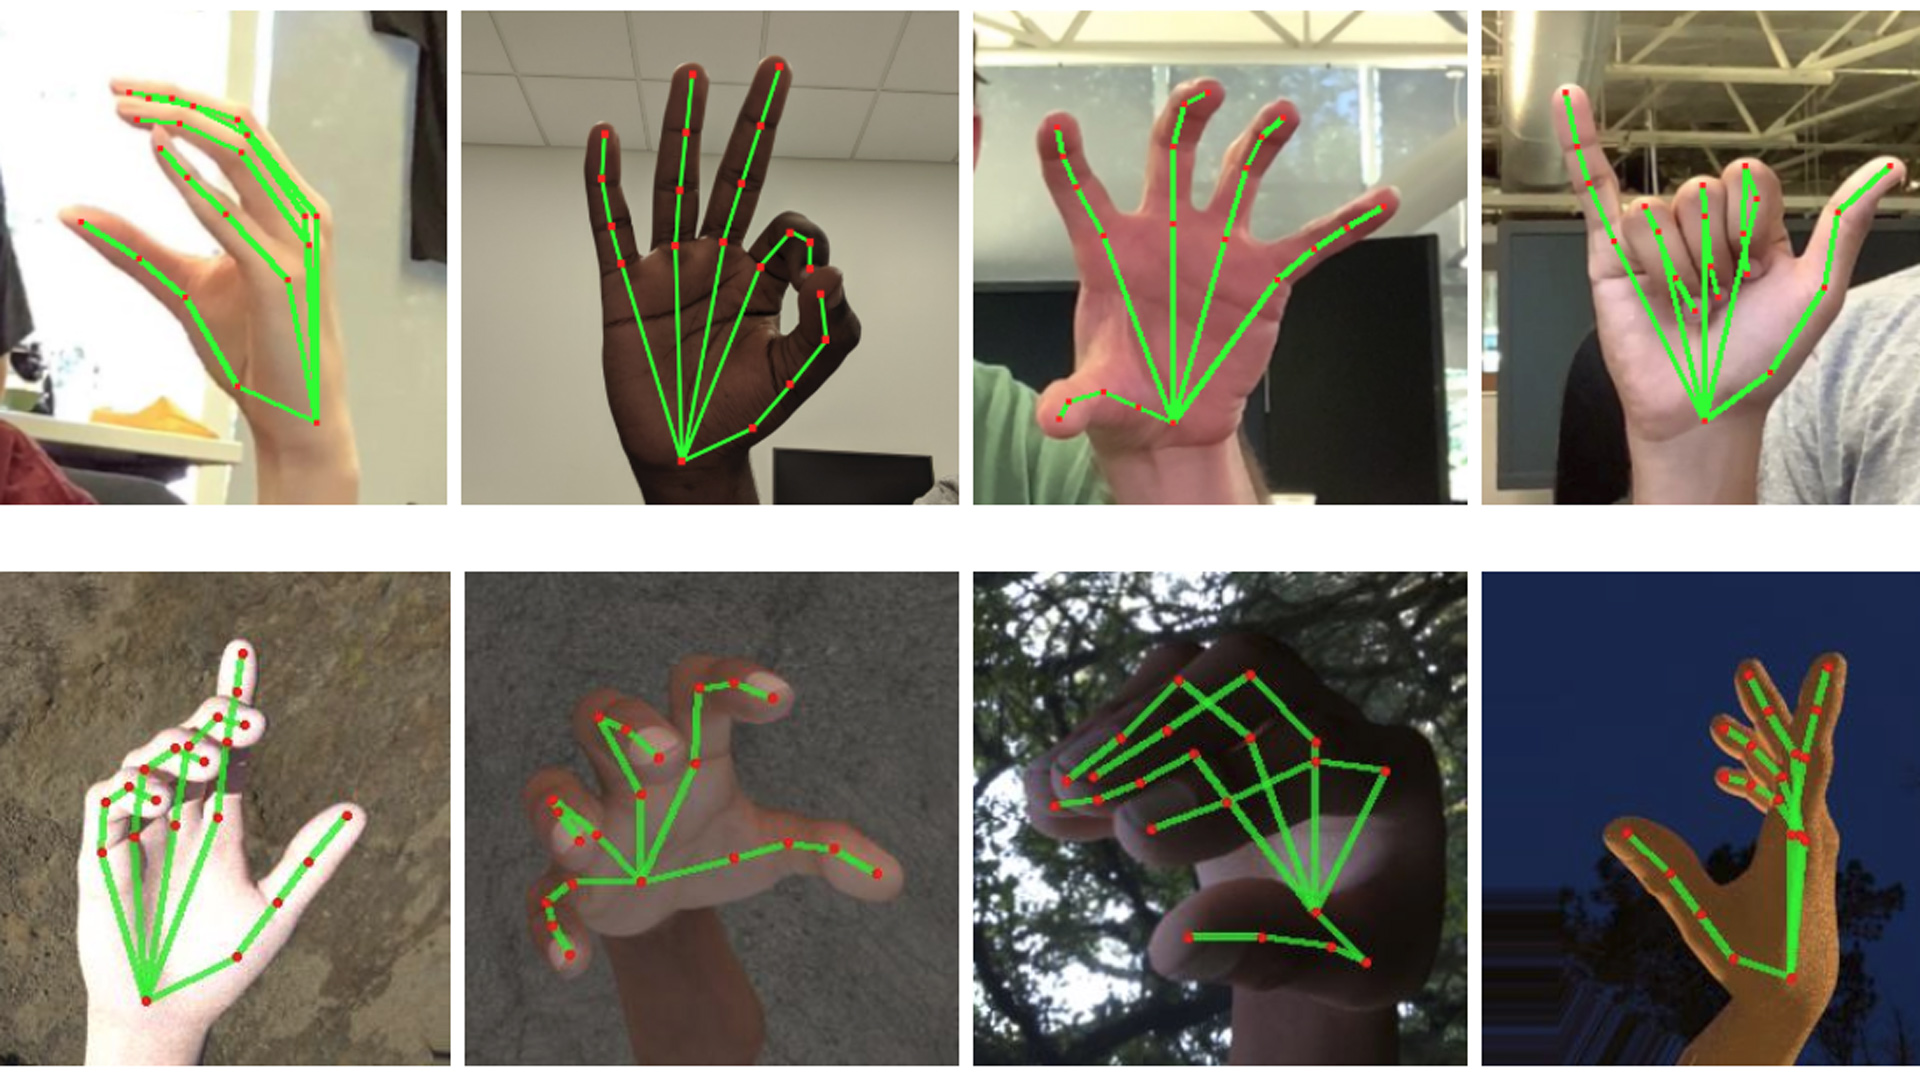 Google Releases Real-time Mobile Hand Tracking to R&D Community